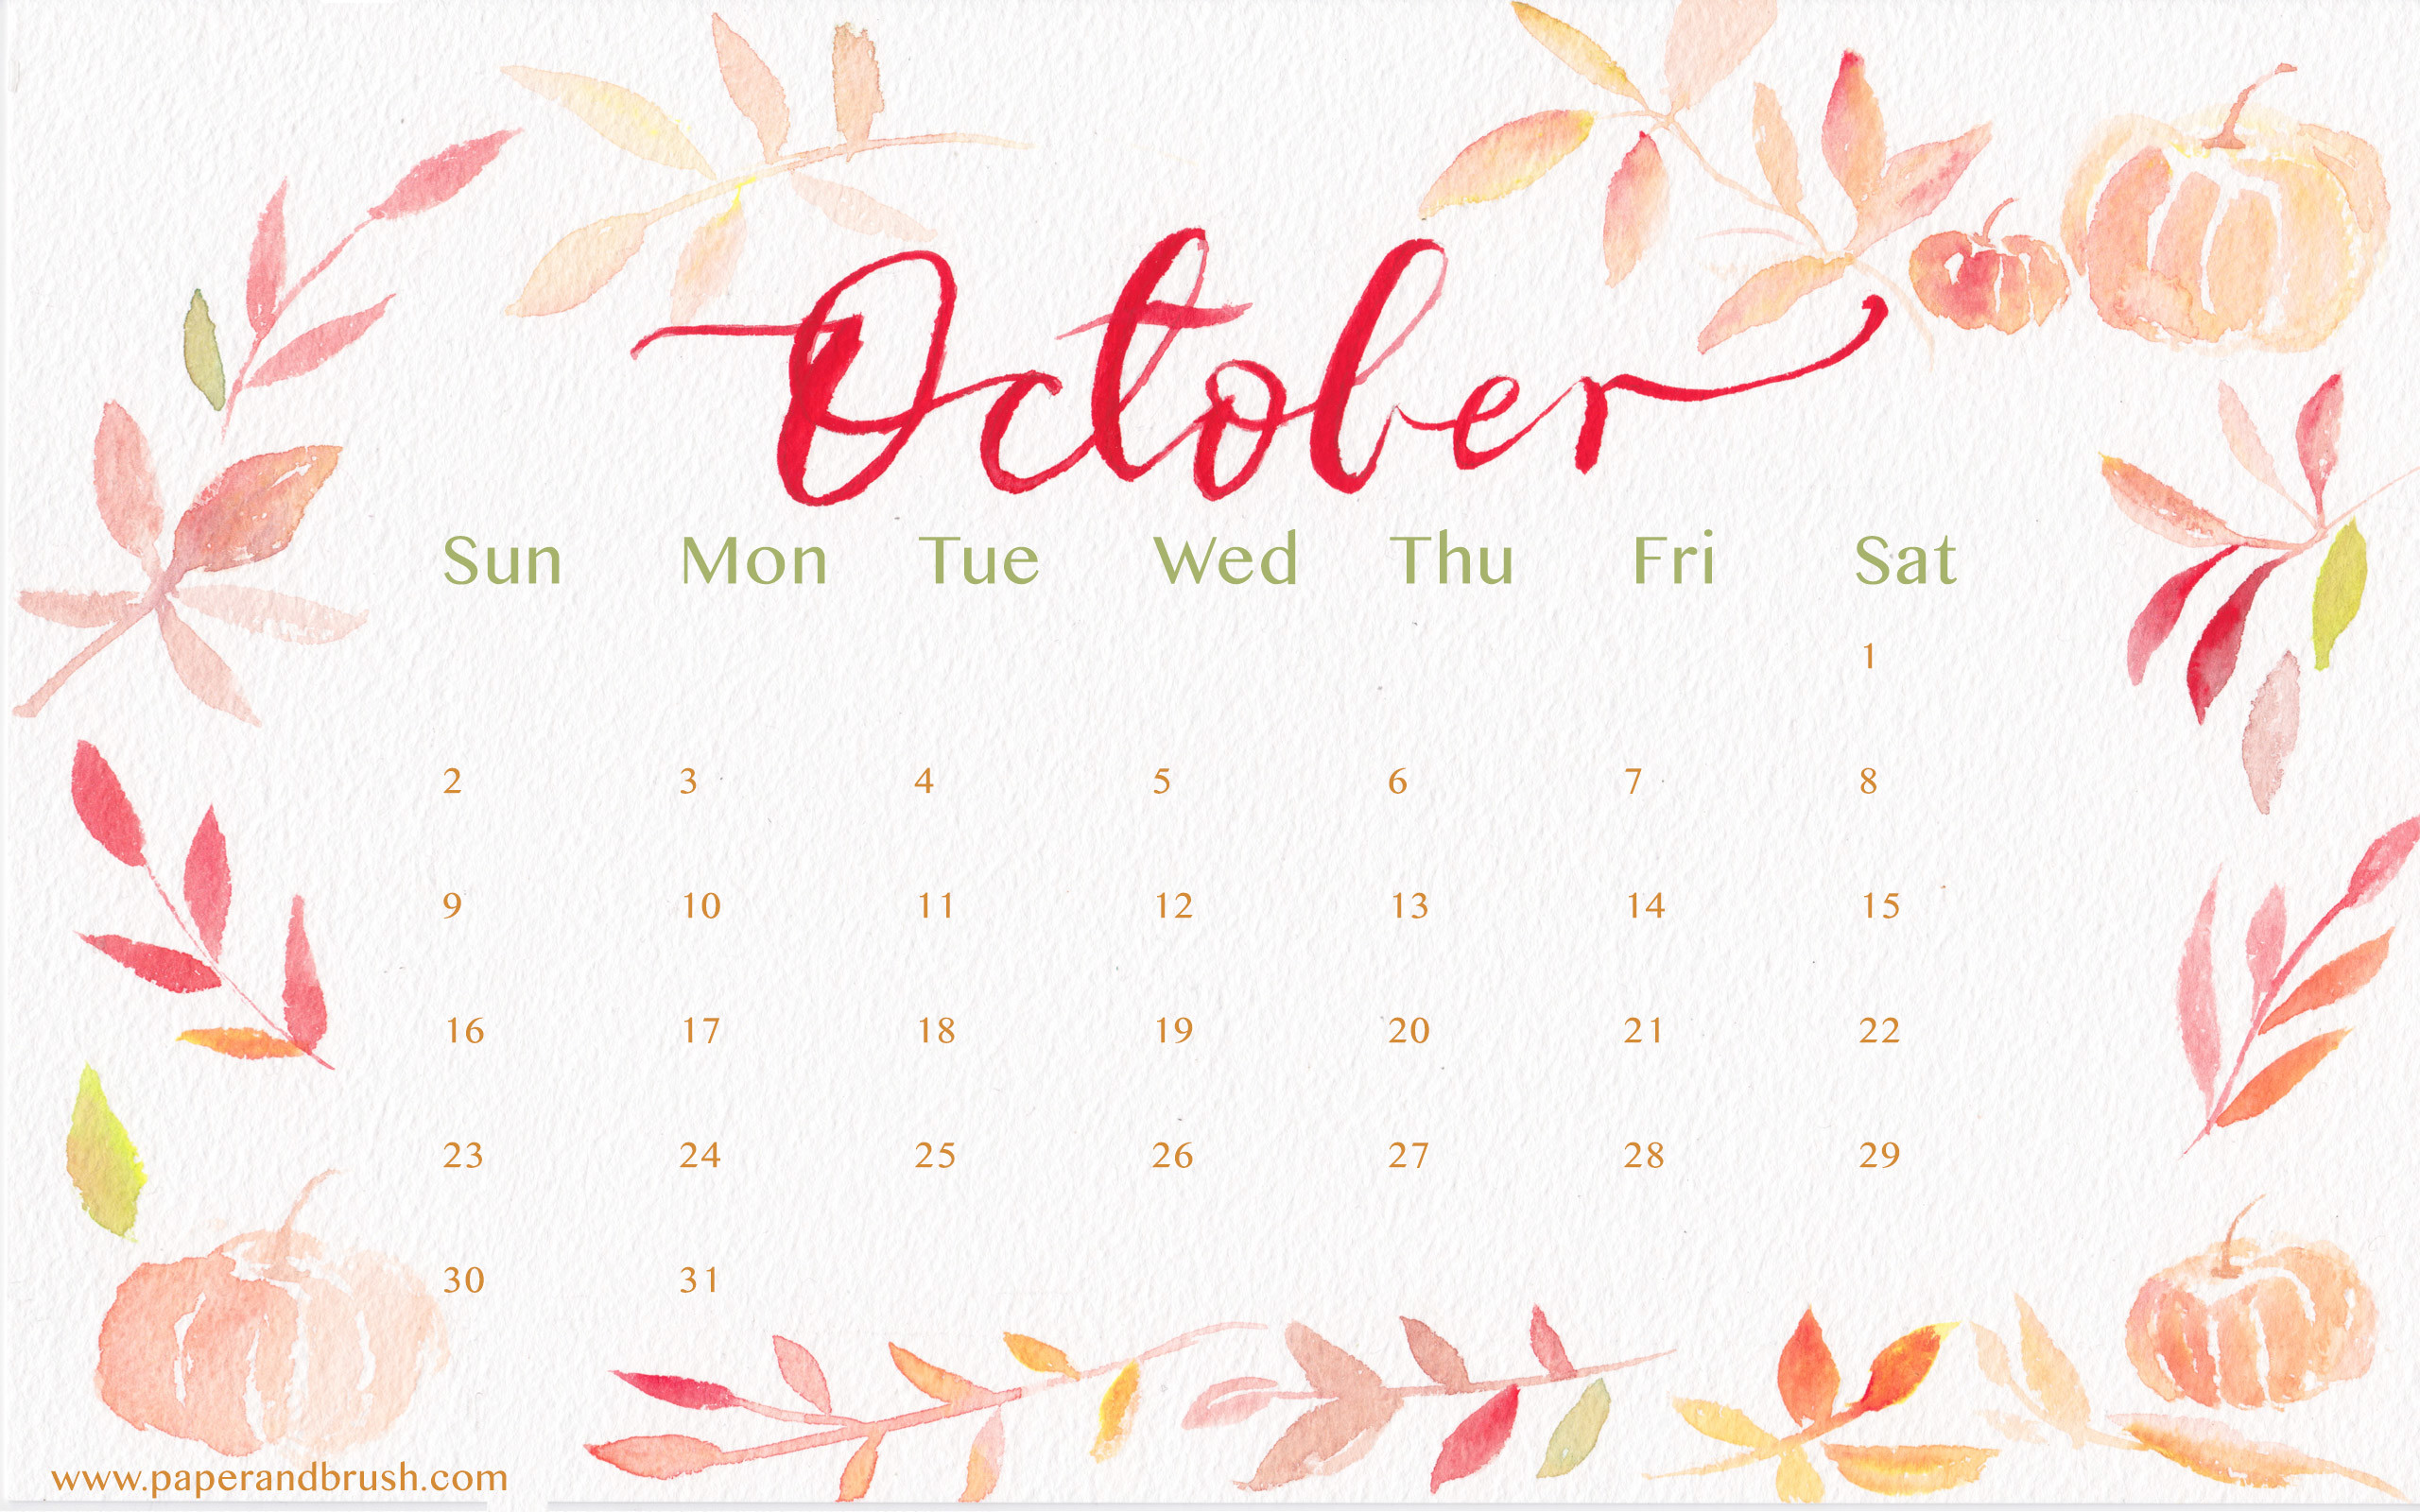 Calendar Wallpaper Mac : October wallpaper backgrounds images